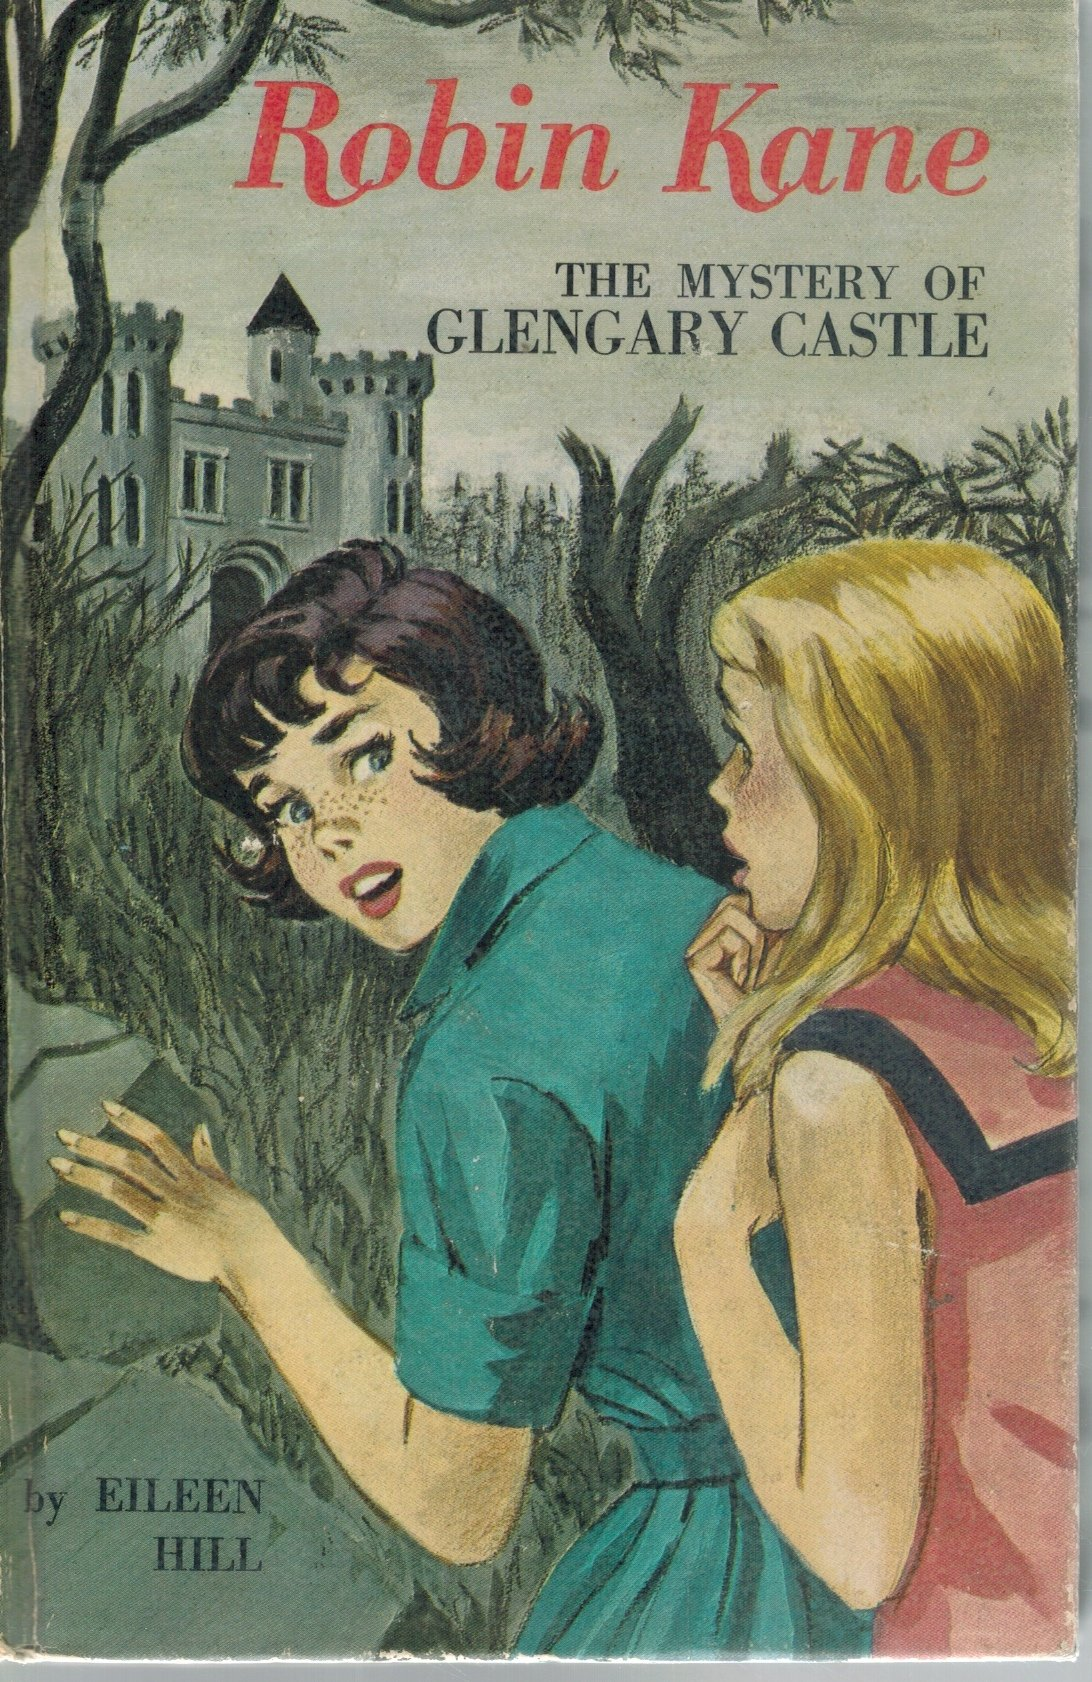 THE MYSTERY OF GLENGARY CASTLE  by Hill, Eileen